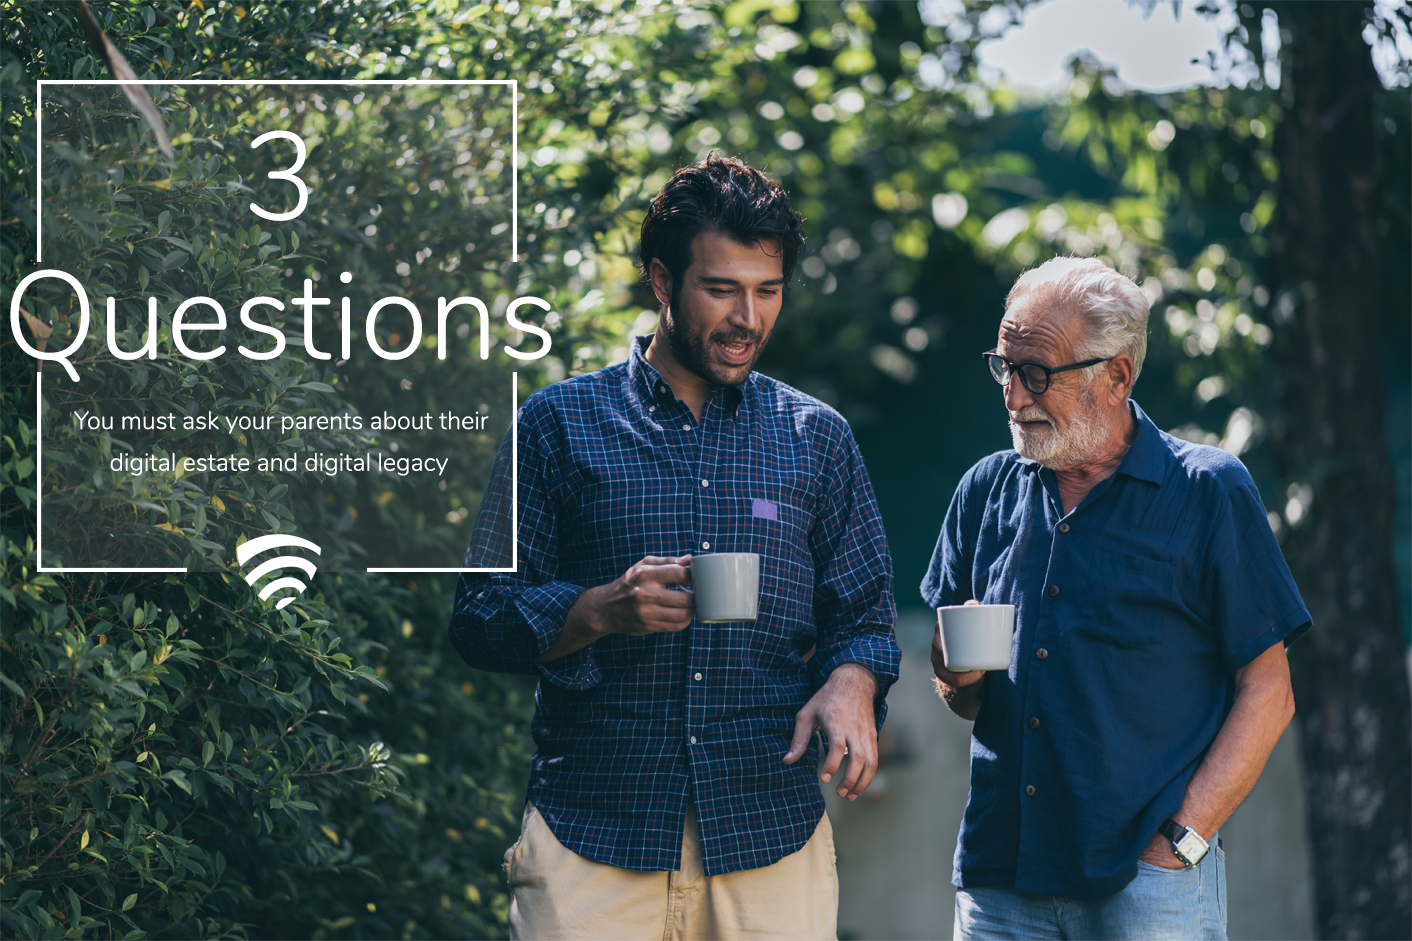 Talking With Your Parents Of End Of Life Plans, Future Planning, Digital Parents, Digital Legacy, Digital Estate, Digital Legacy Planning, Digital Estate Planning, Info Vault, Important Files, Digital Death, End-of-Life Services, Your Legacy, Legacy Planning, Estate Planning, Financial Planning